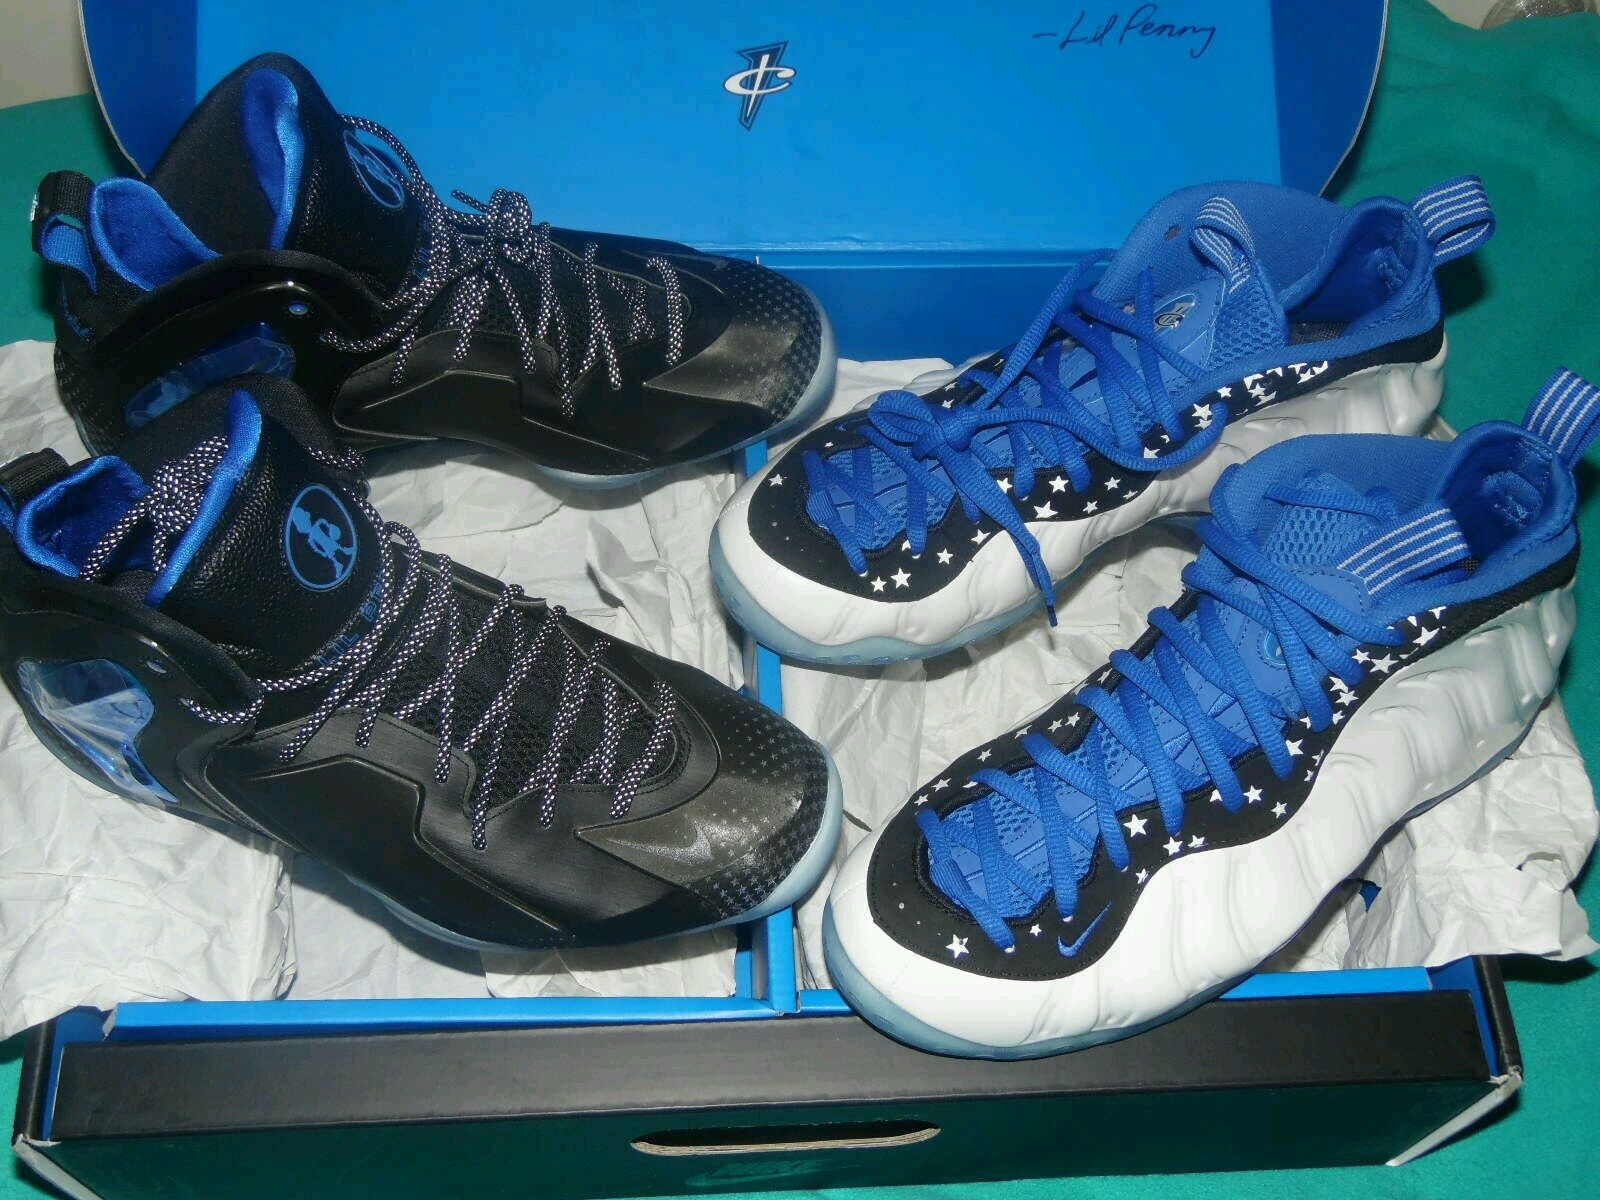 NIKE AIR FOAMPOSITE ONE SHOOTING STAR FOAMS 2 PACK PENNY HARDAWAY SIZE 11.5 RARE